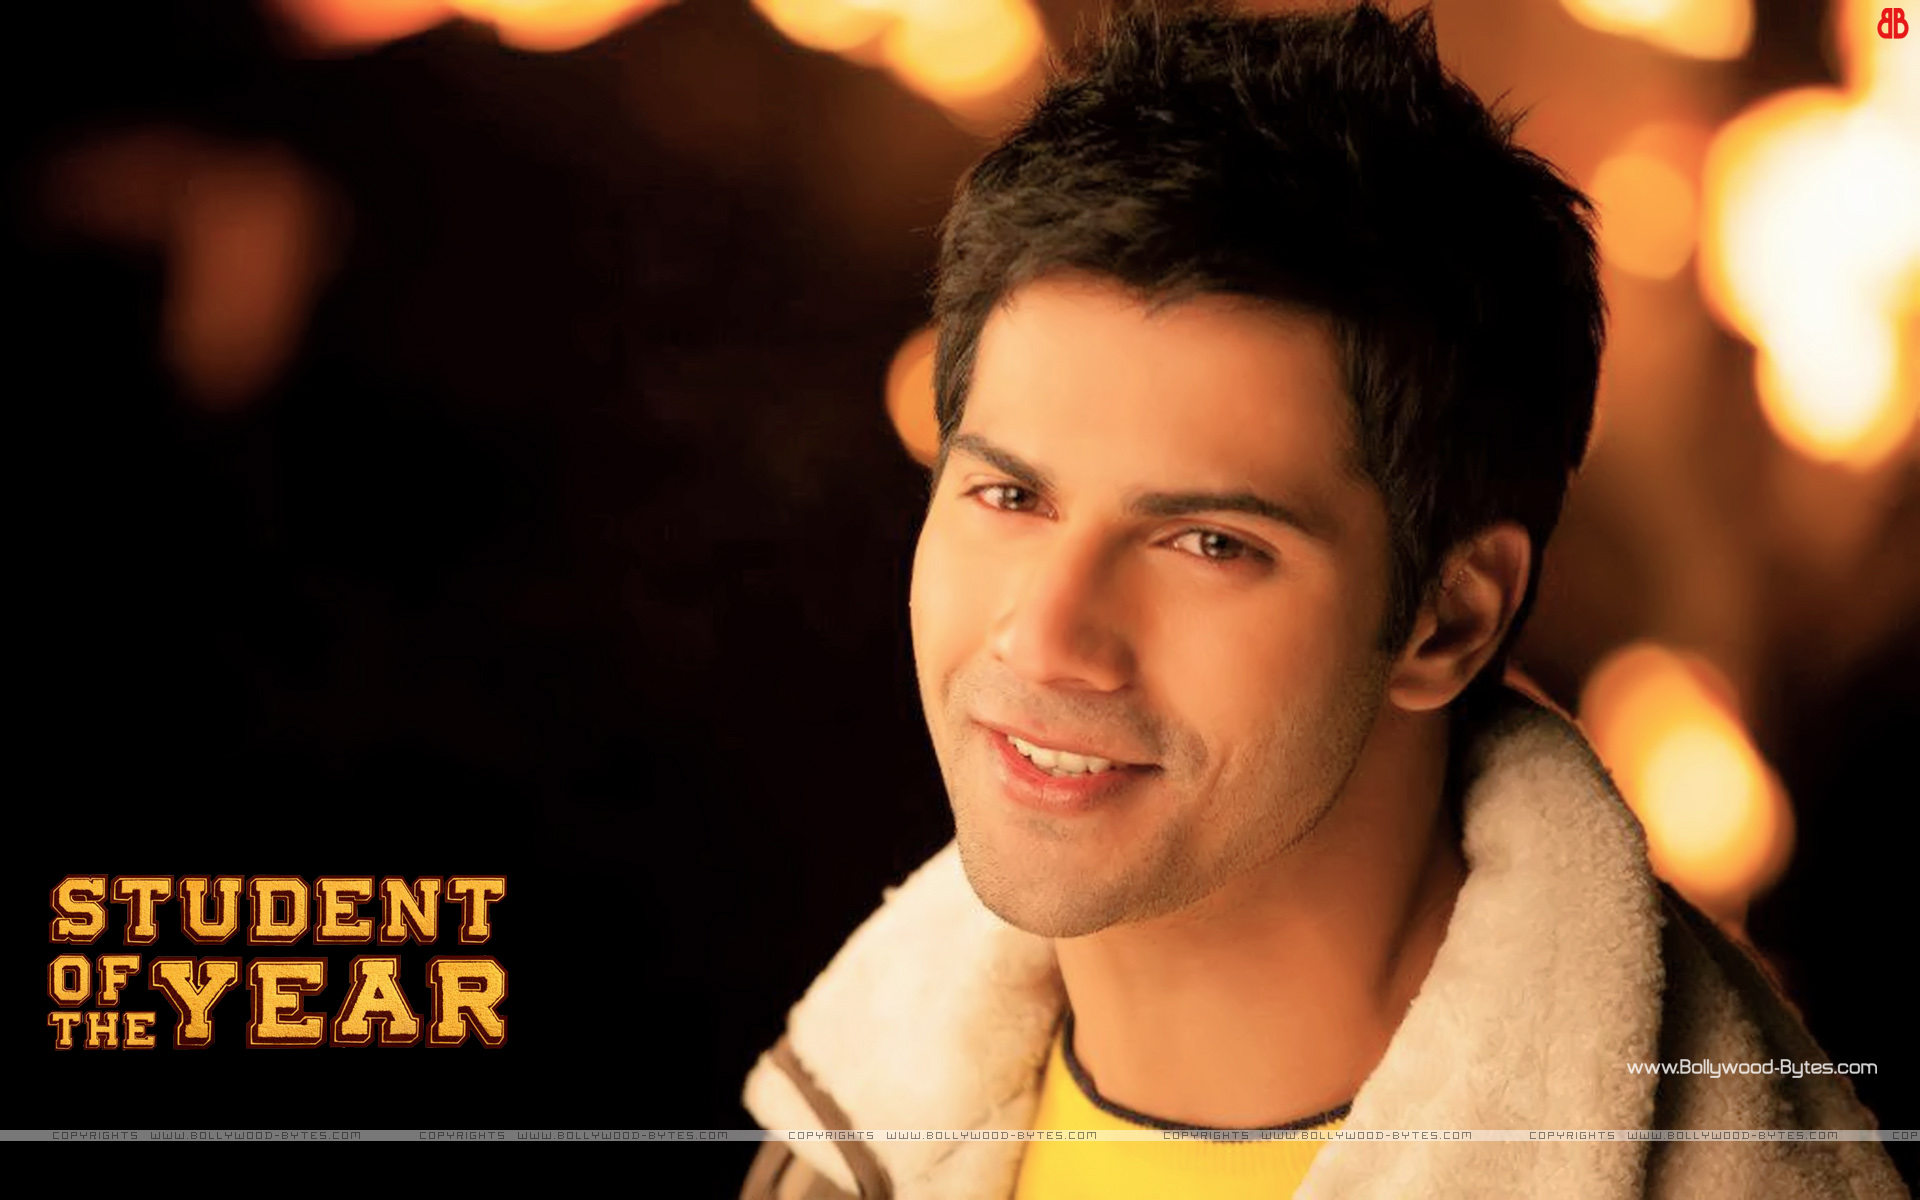 Get Hit Songs Of Varun Dhawan From Hindi Movies Varun Dhawan In Student Of The Year 1268225 Hd Wallpaper Backgrounds Download Search free wallpapers, ringtones and notifications on zedge and personalize your phone to suit you. get hit songs of varun dhawan from